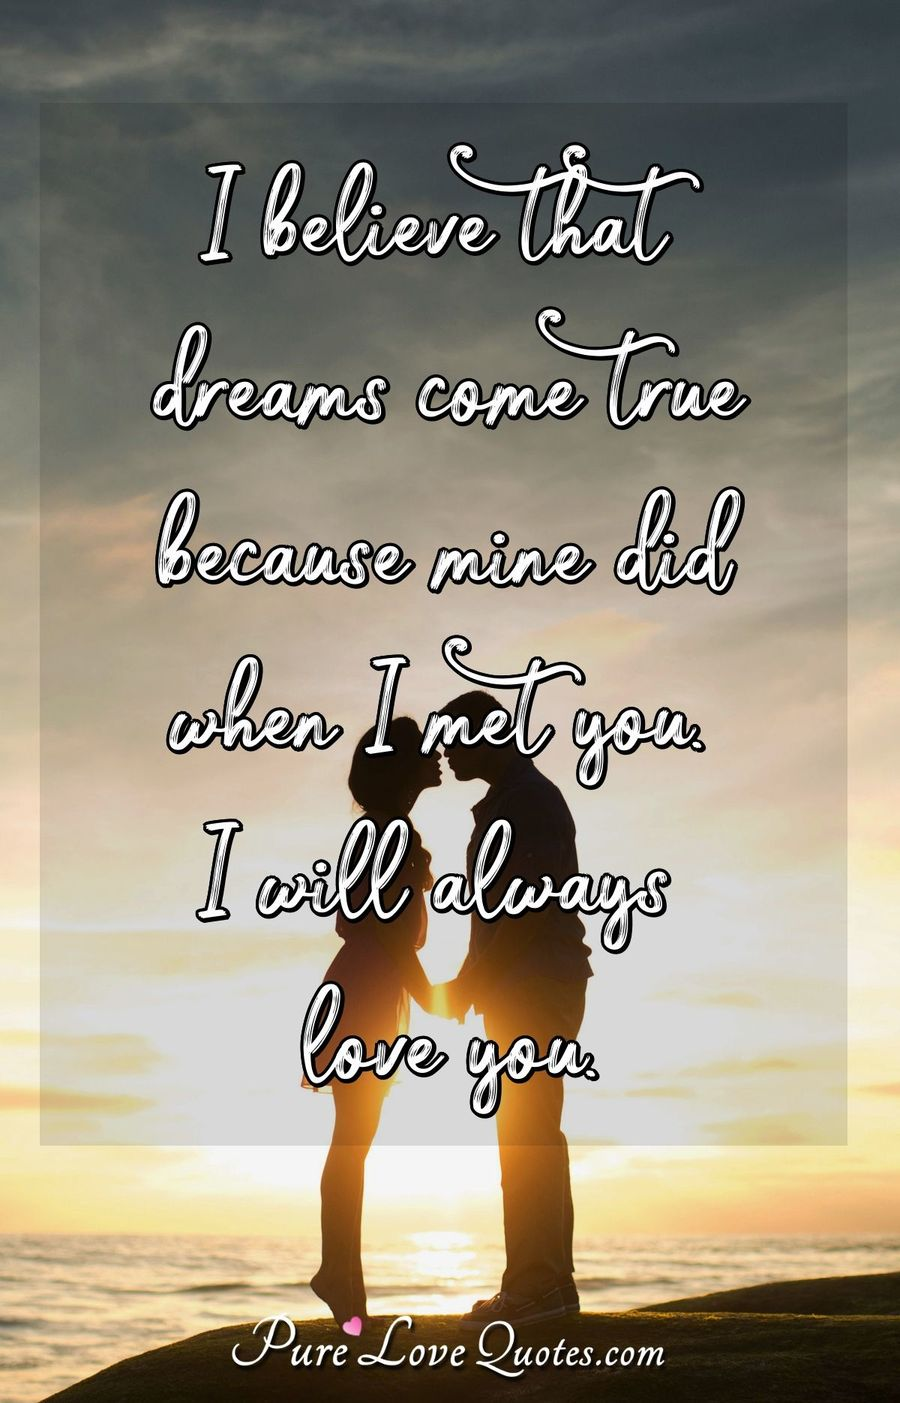 True Love You Quotes: I Believe That Dreams Come True Because Mine Did When I